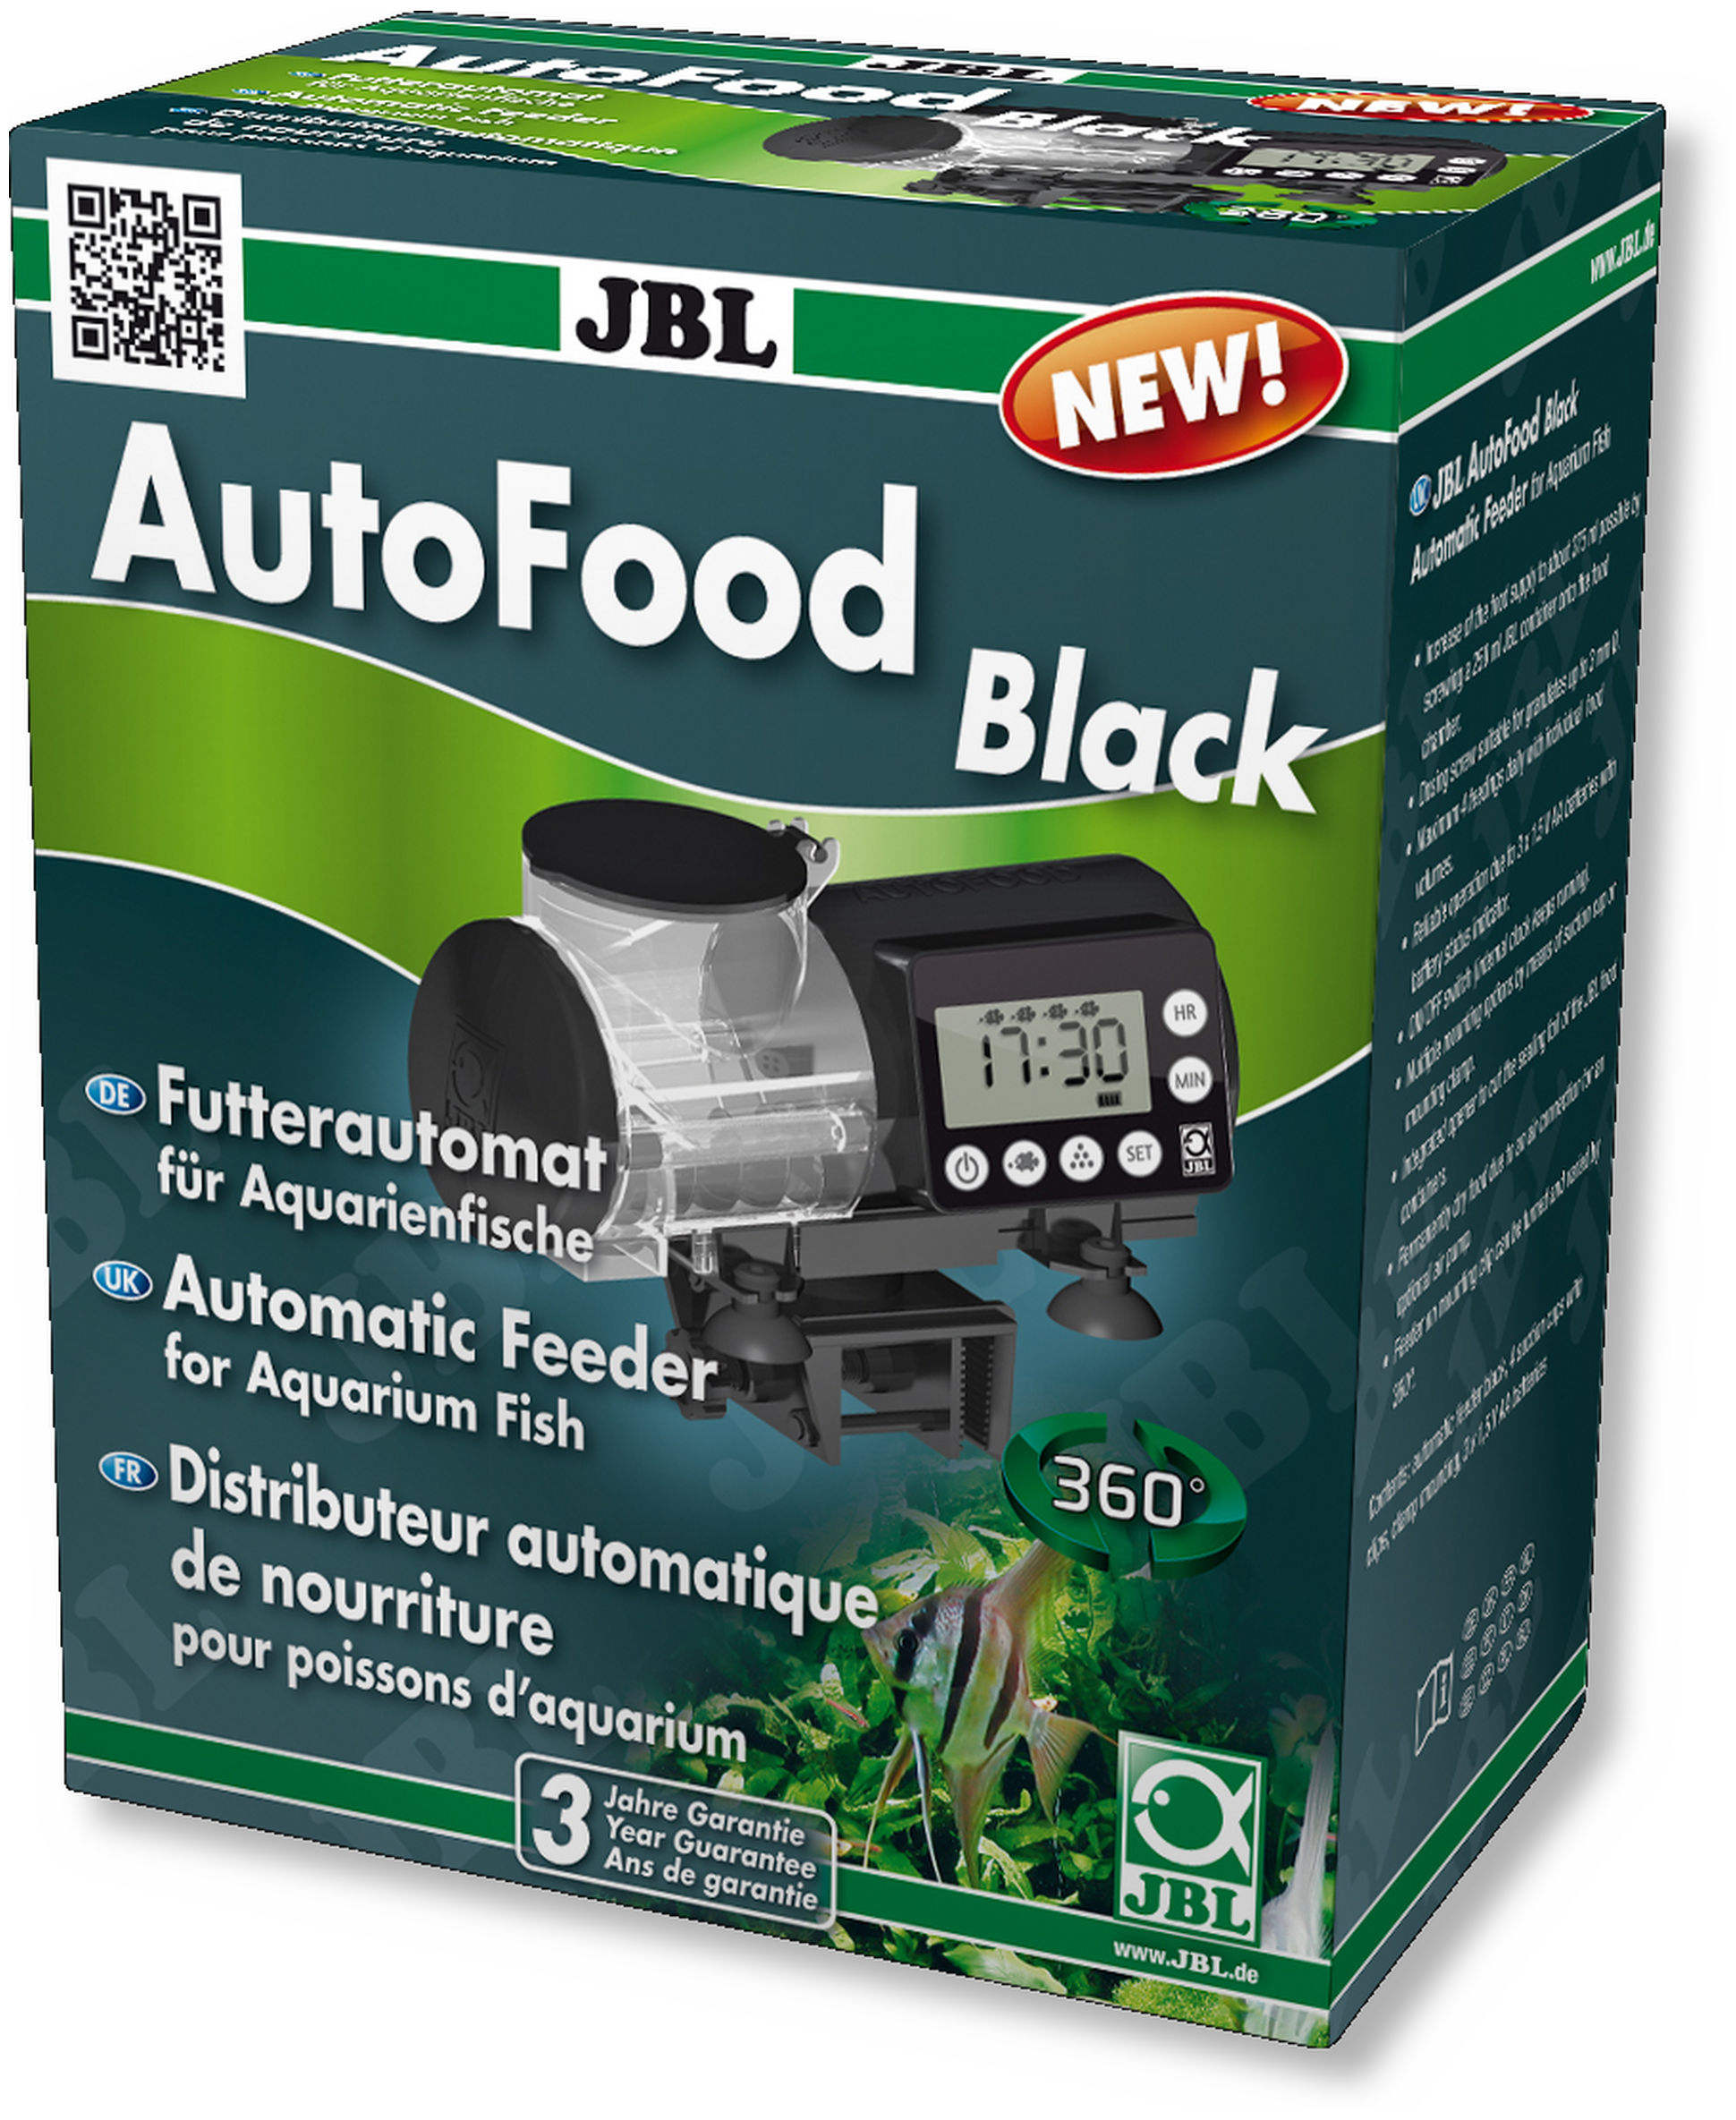 fish ip ebbb com aqua feeder automatic walmart culture daily double ii auto